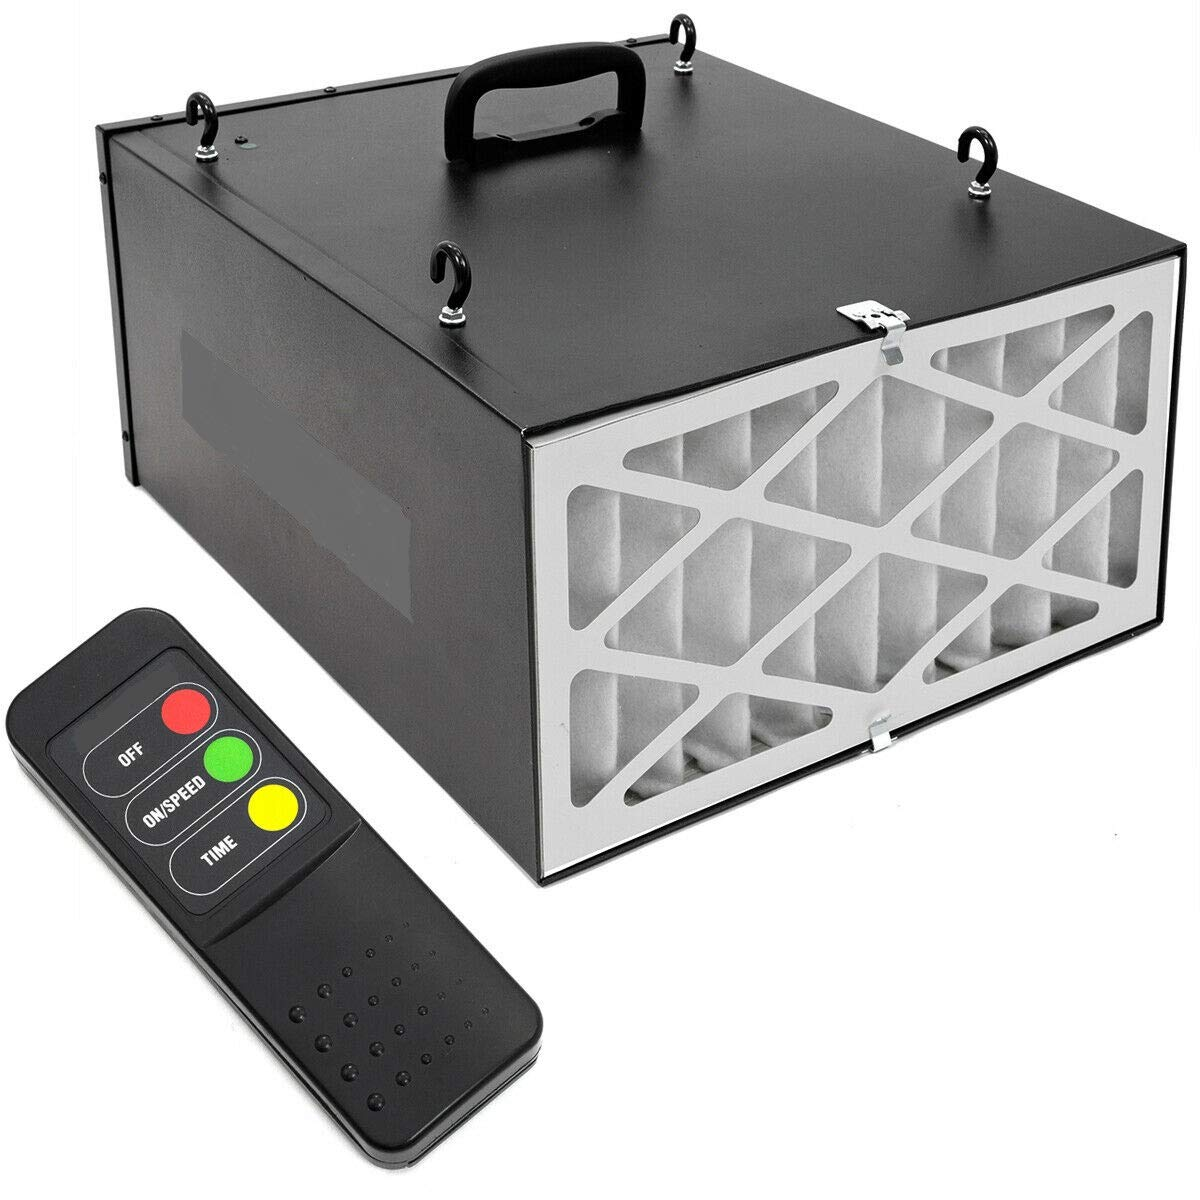 9TRADING Industrial 3-Speed Remote-Controlled Industrial-Strength Air Filtration System